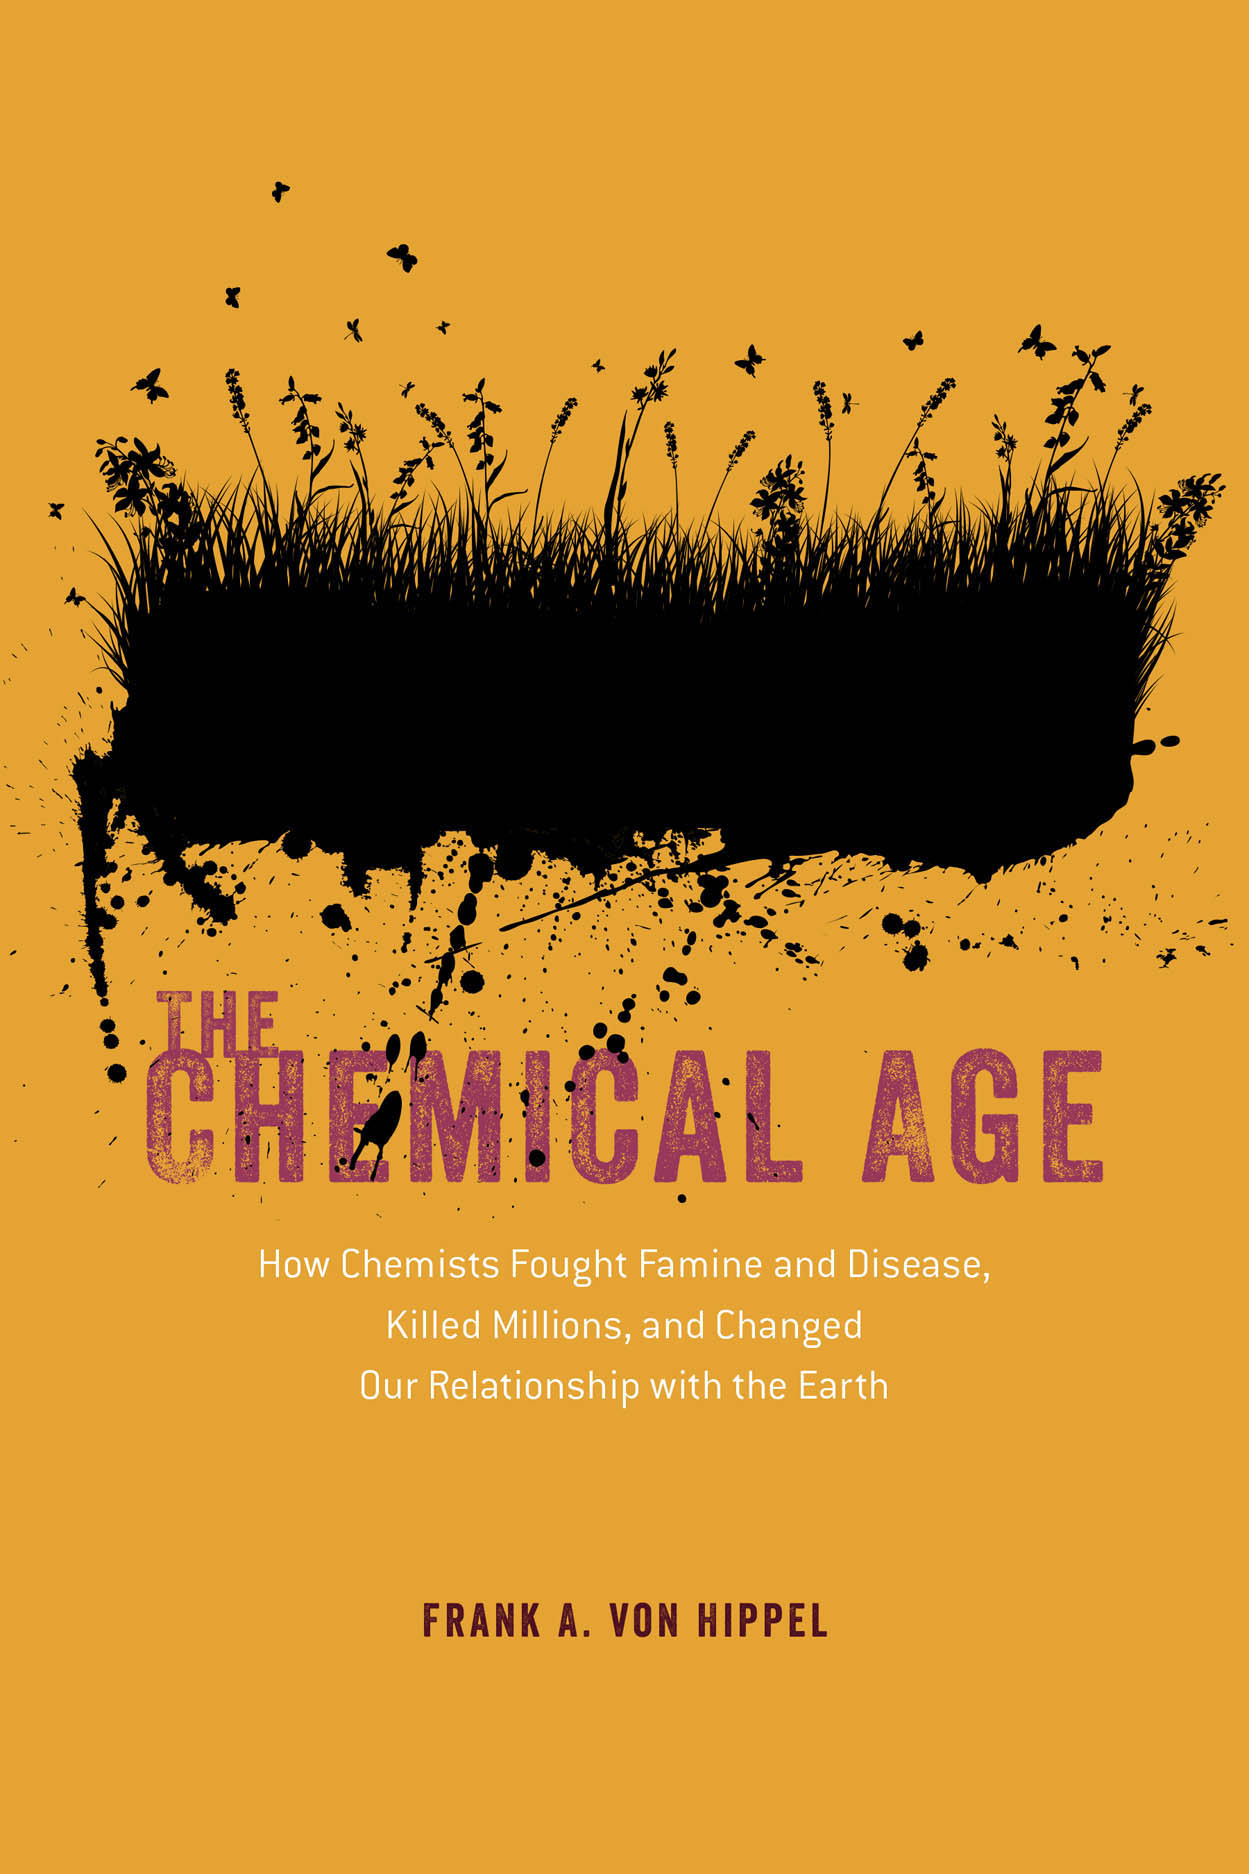 The Chemical Age: How Chemists Fought Famine and Disease, Killed Millions, and Changed Our Relationship with the Earth